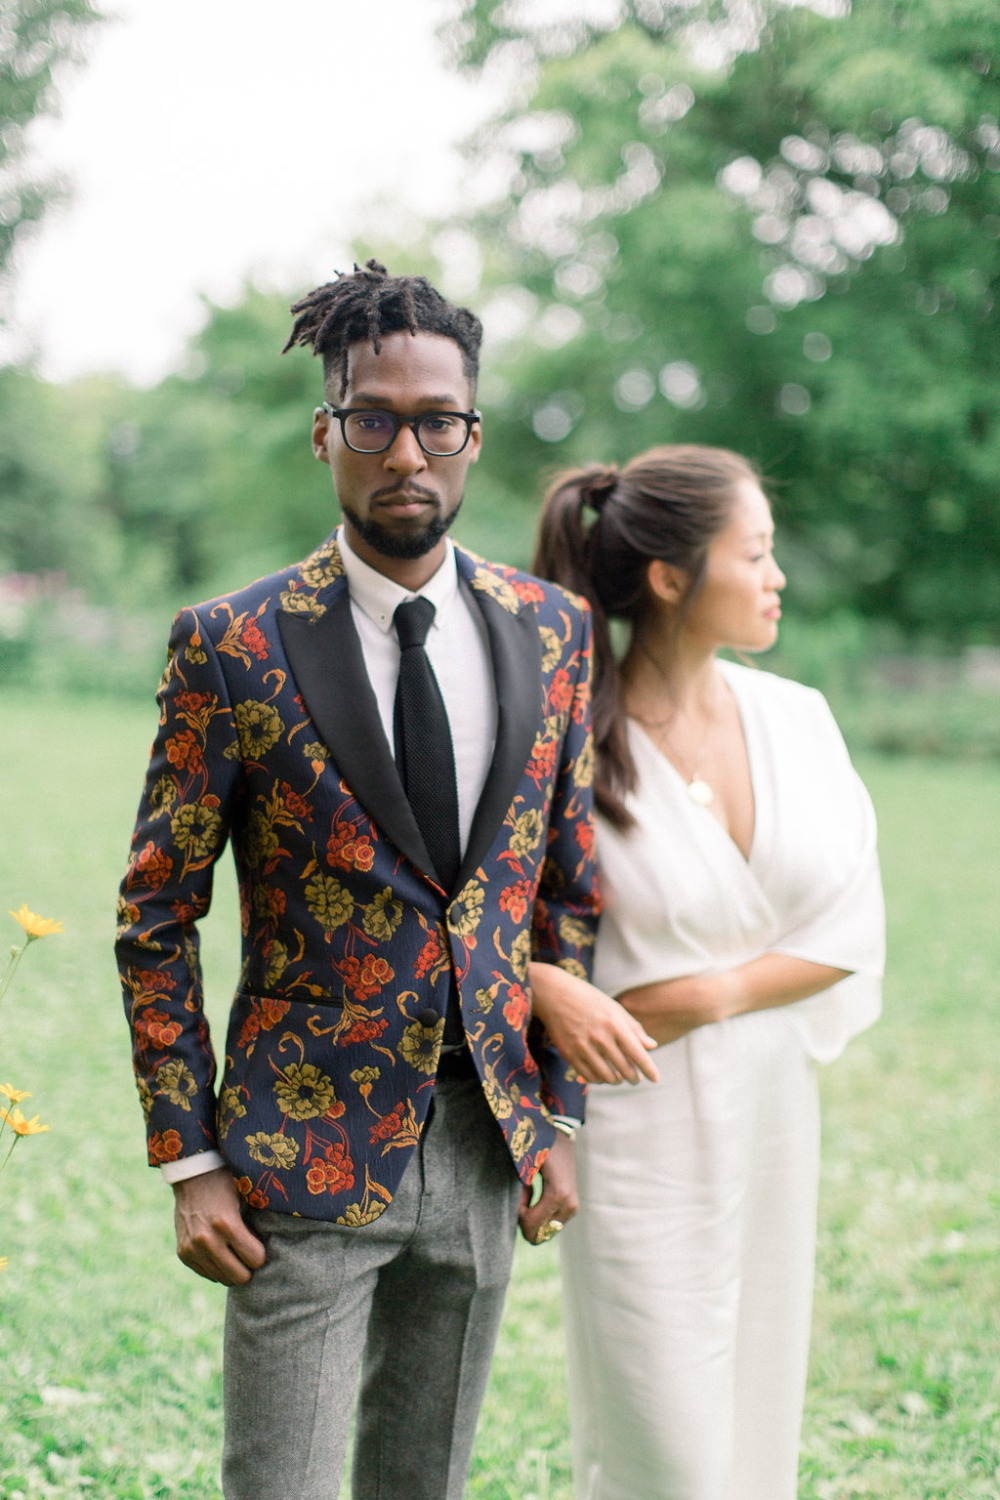 Bold jacket for the groom